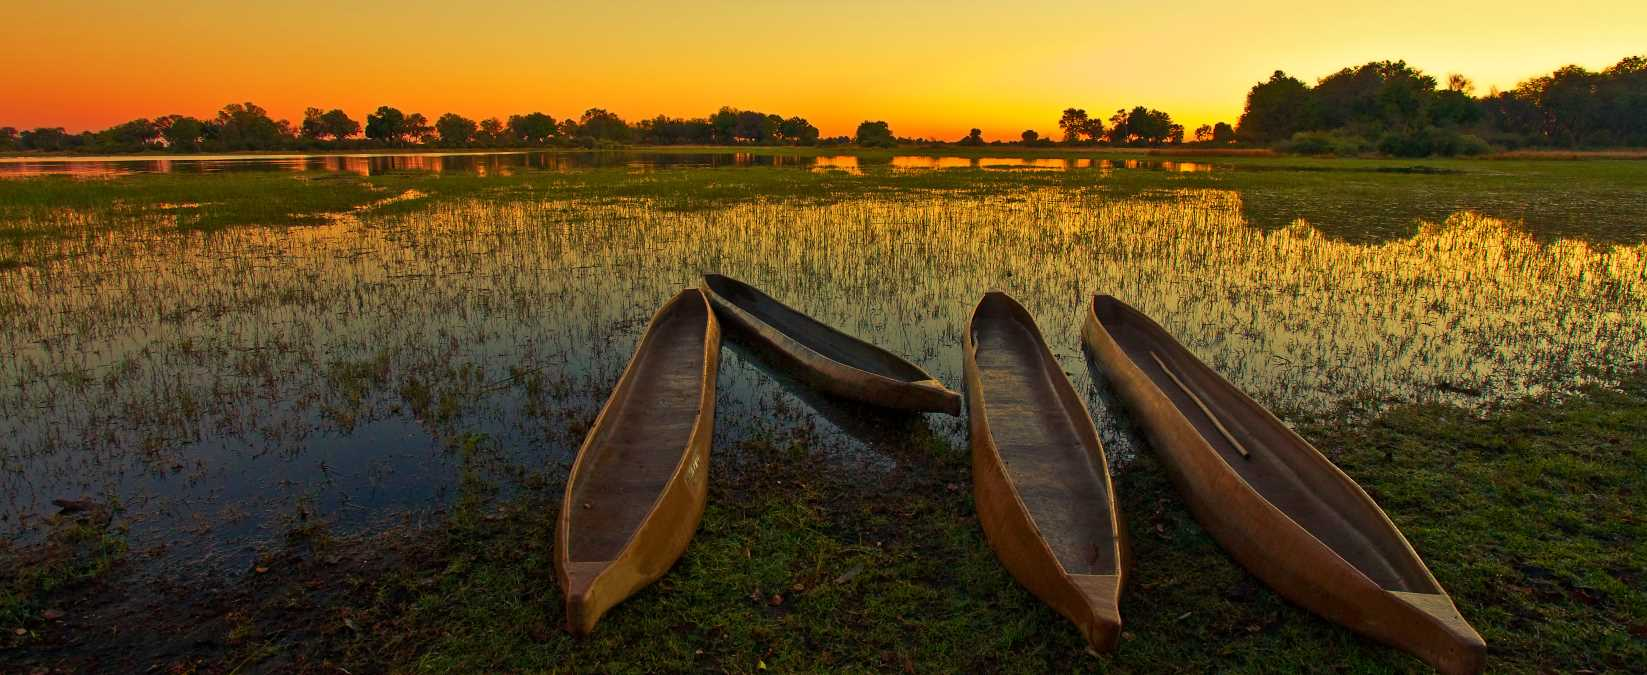 Safari Club - Botswana_Okavango_Delta_Sunrise